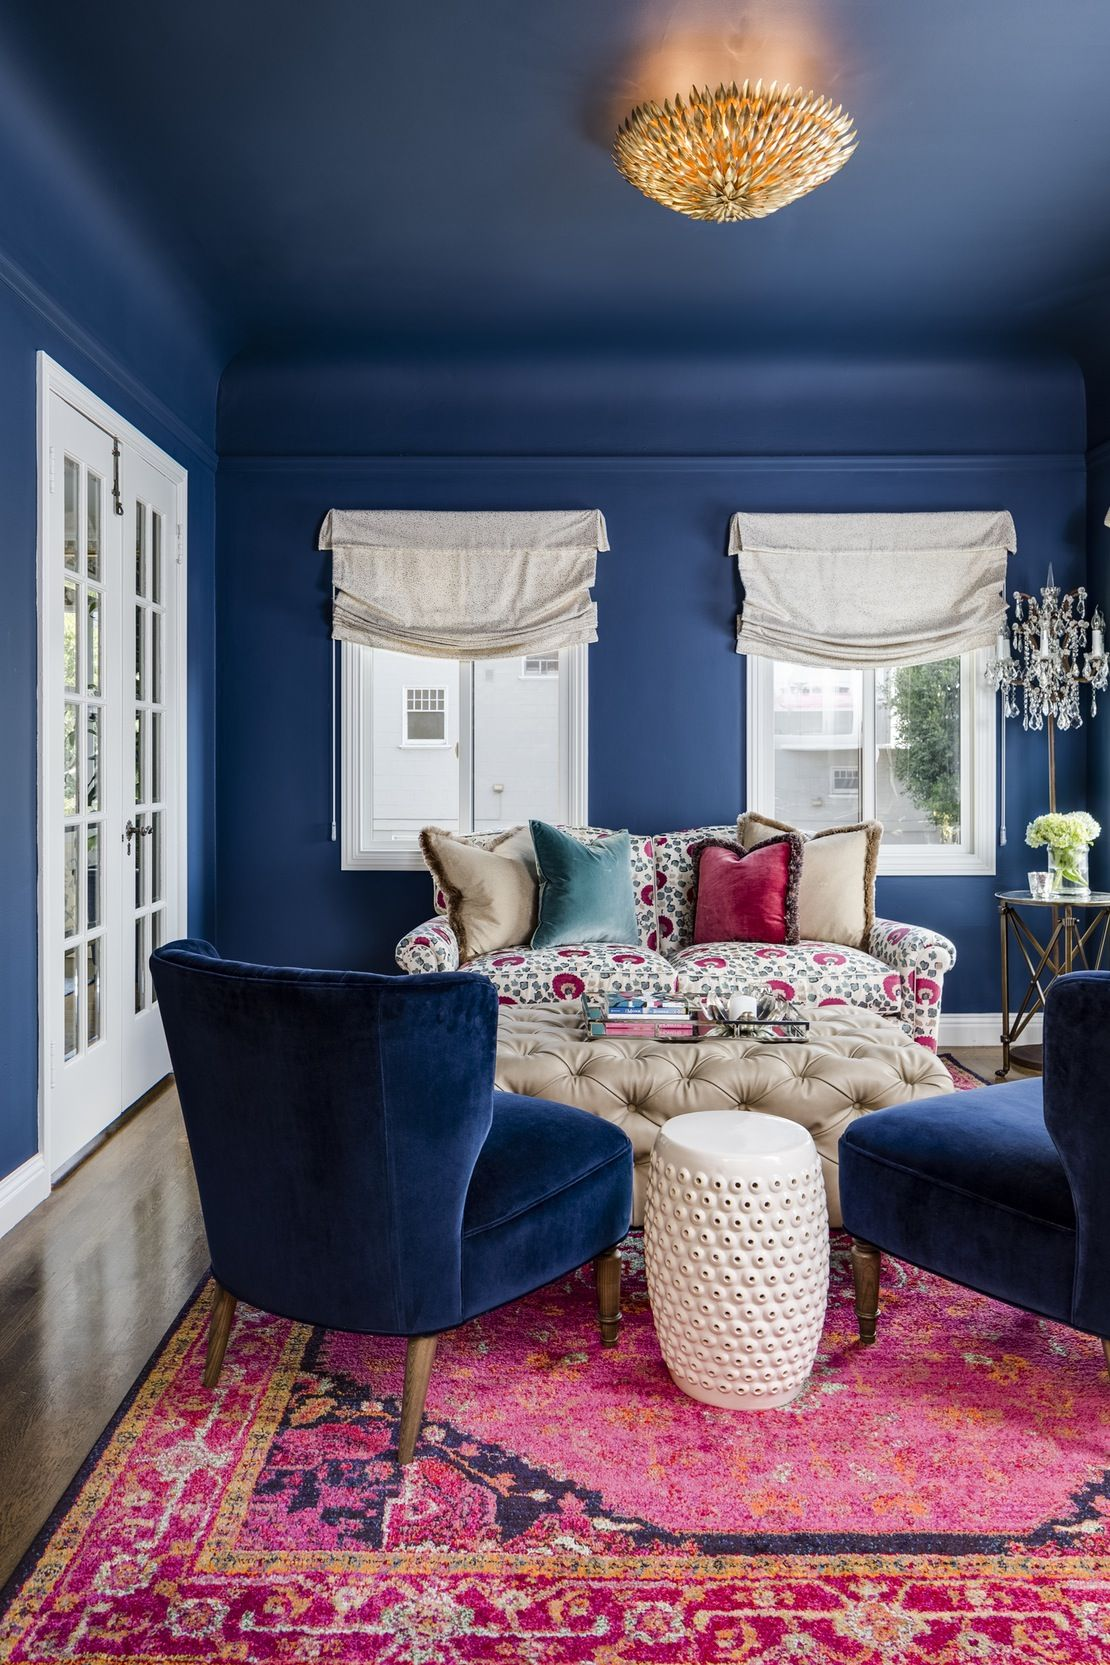 Eclectic Living Room With Bold Primary Colors Breakfast Room